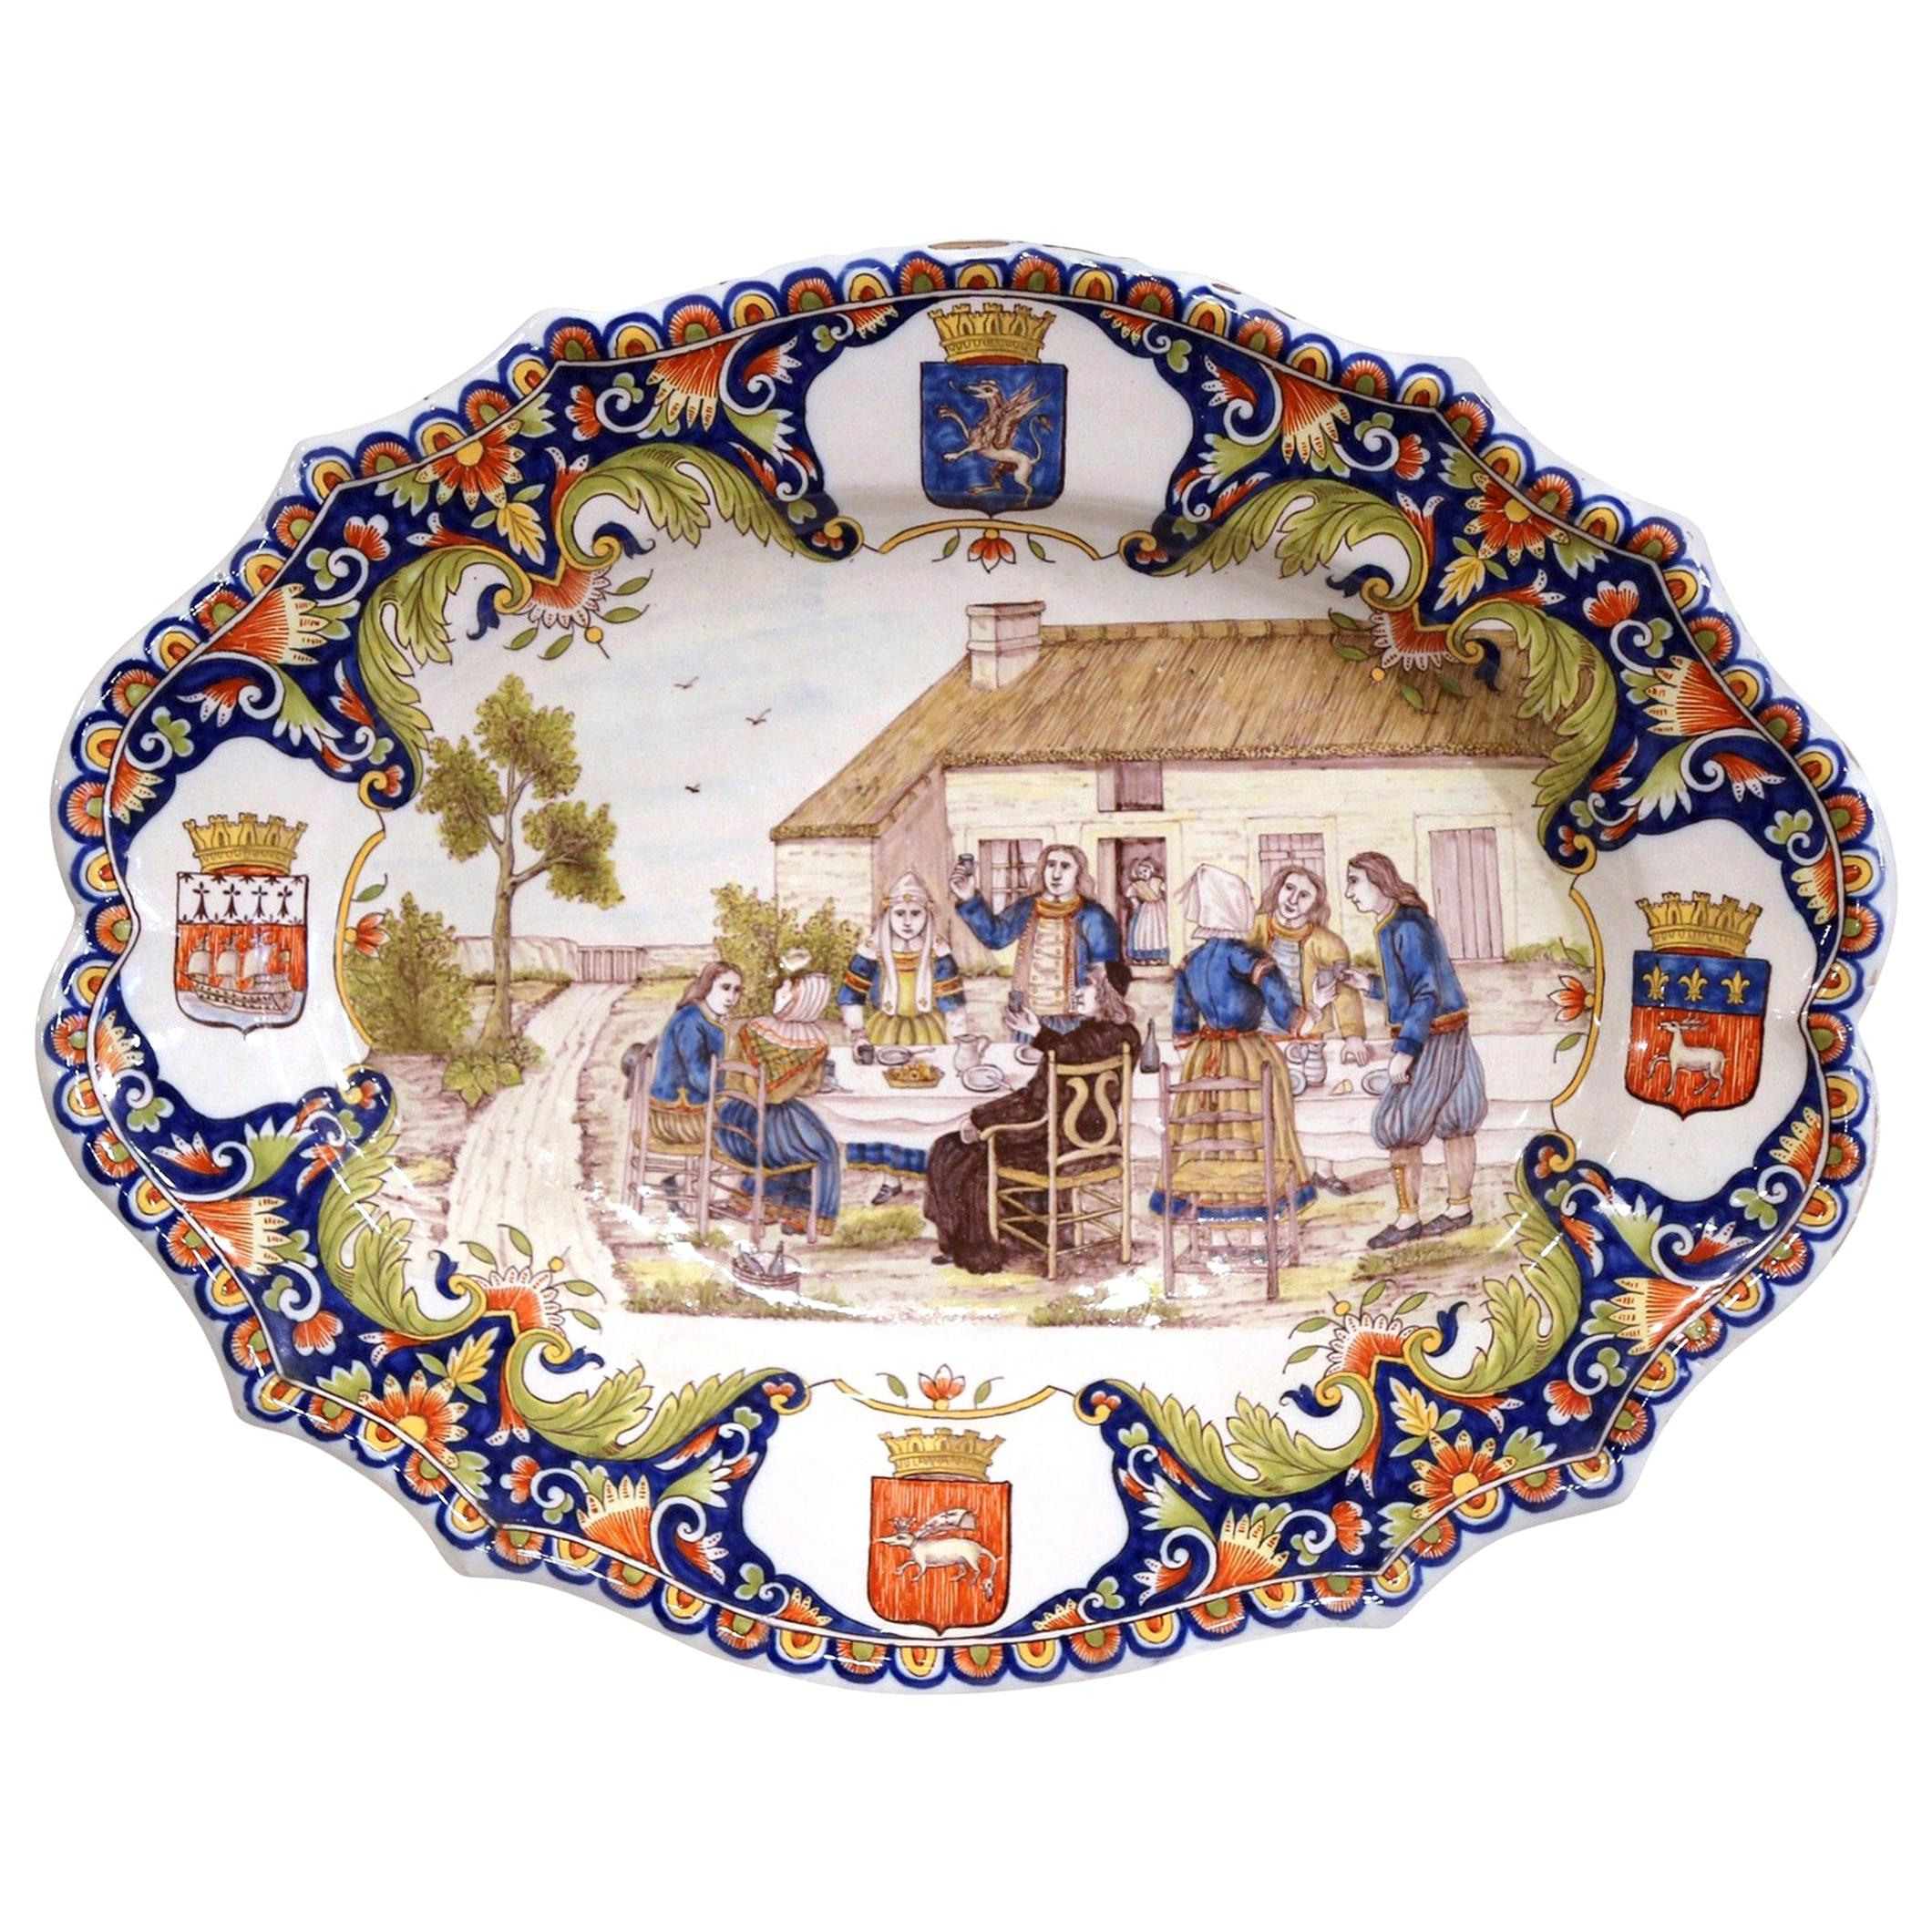 19th Century French Hand Painted Faience Wall Platter from Brittany